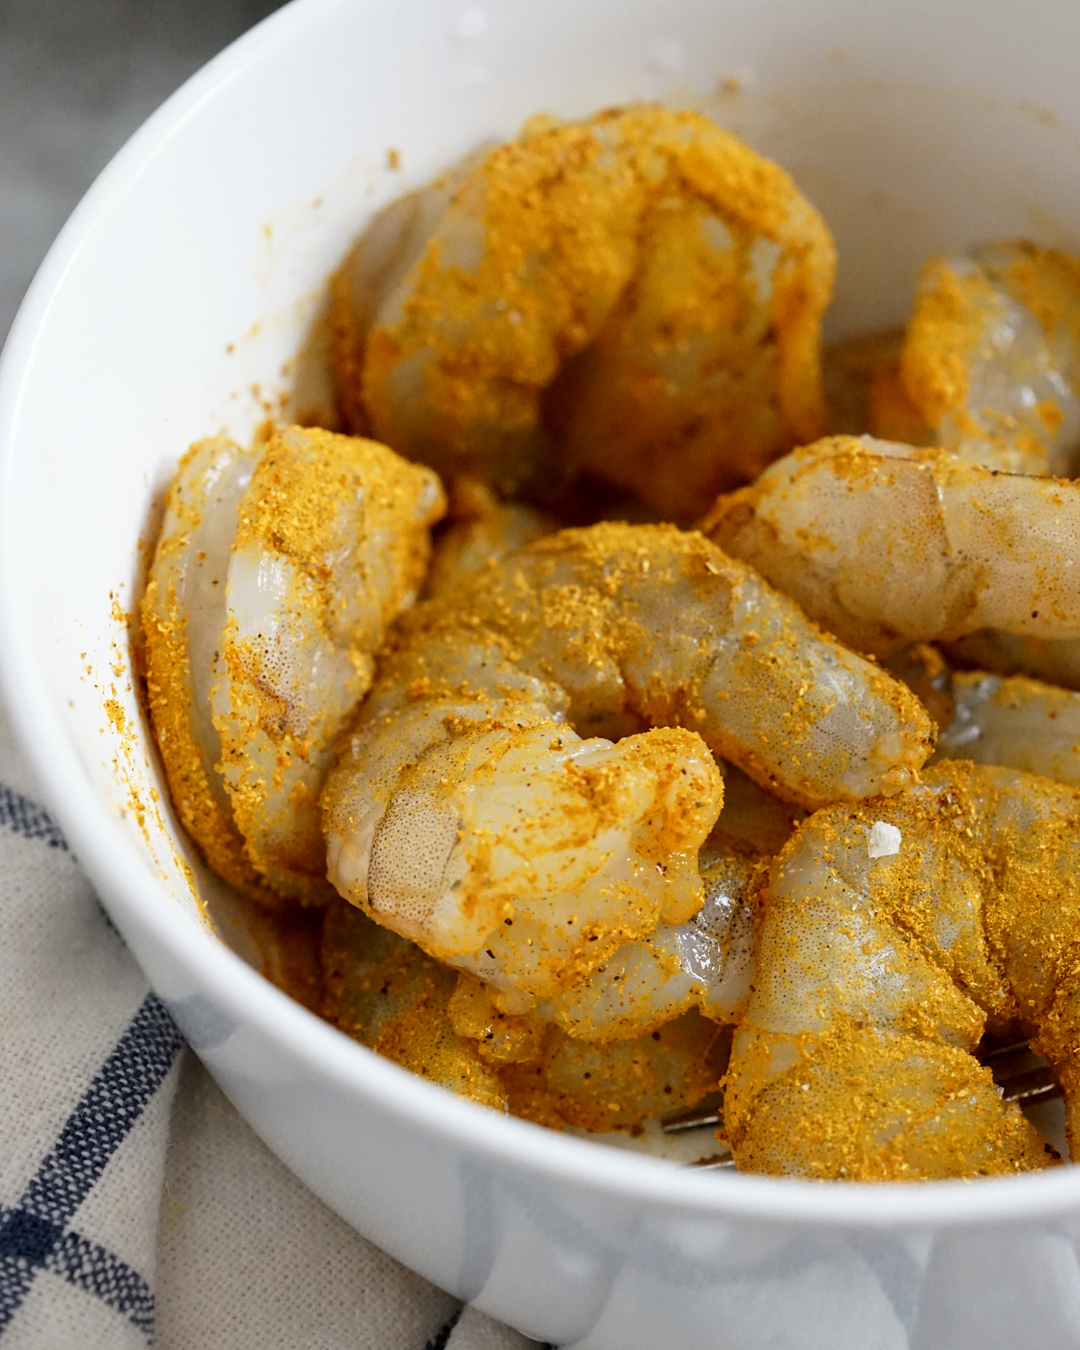 Season the shrimp with curry powder, salt and pepper